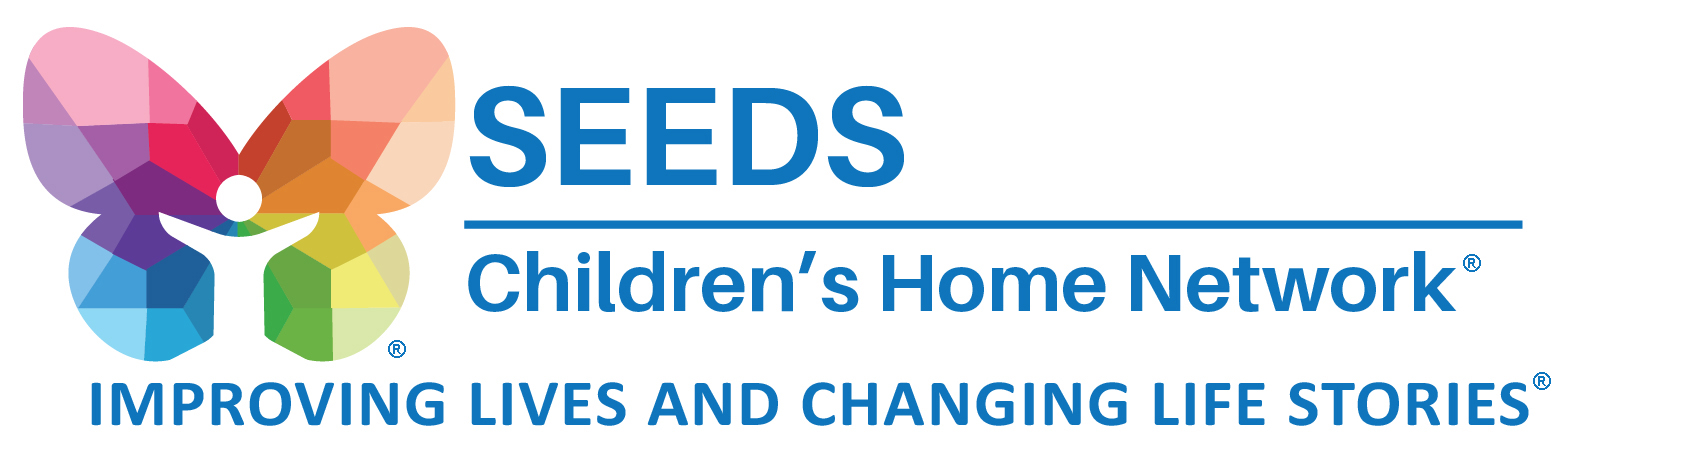 SEEDS Program logo